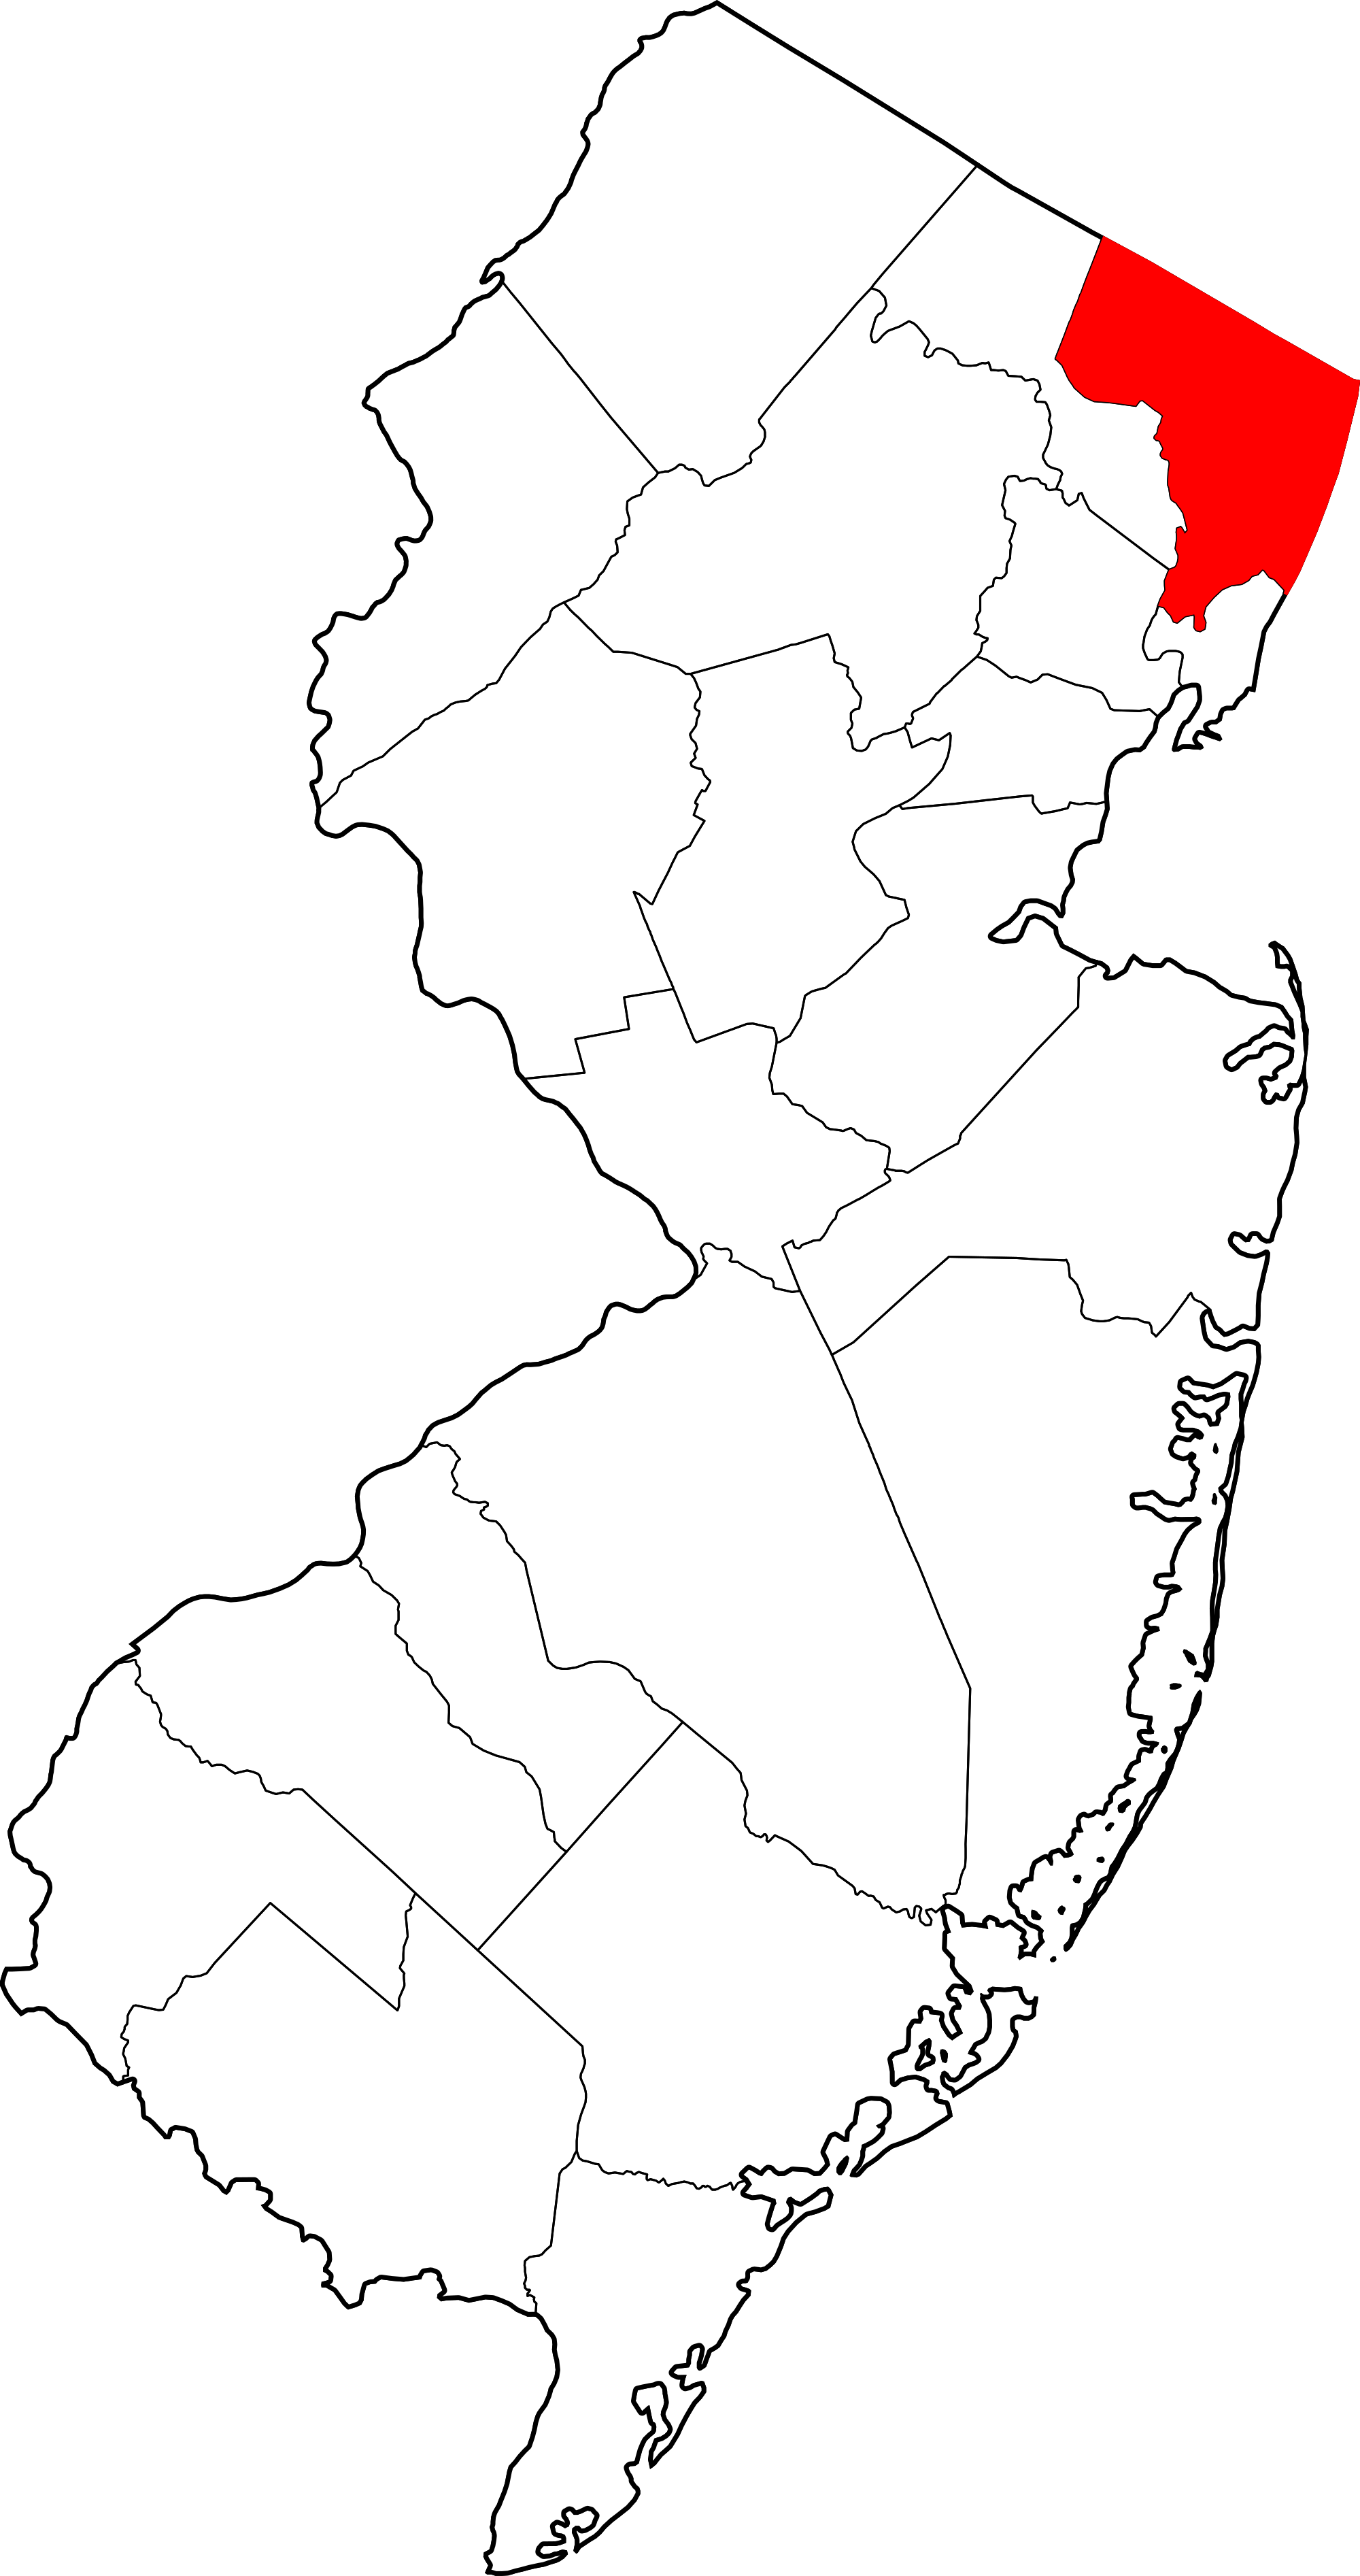 county map of nj.